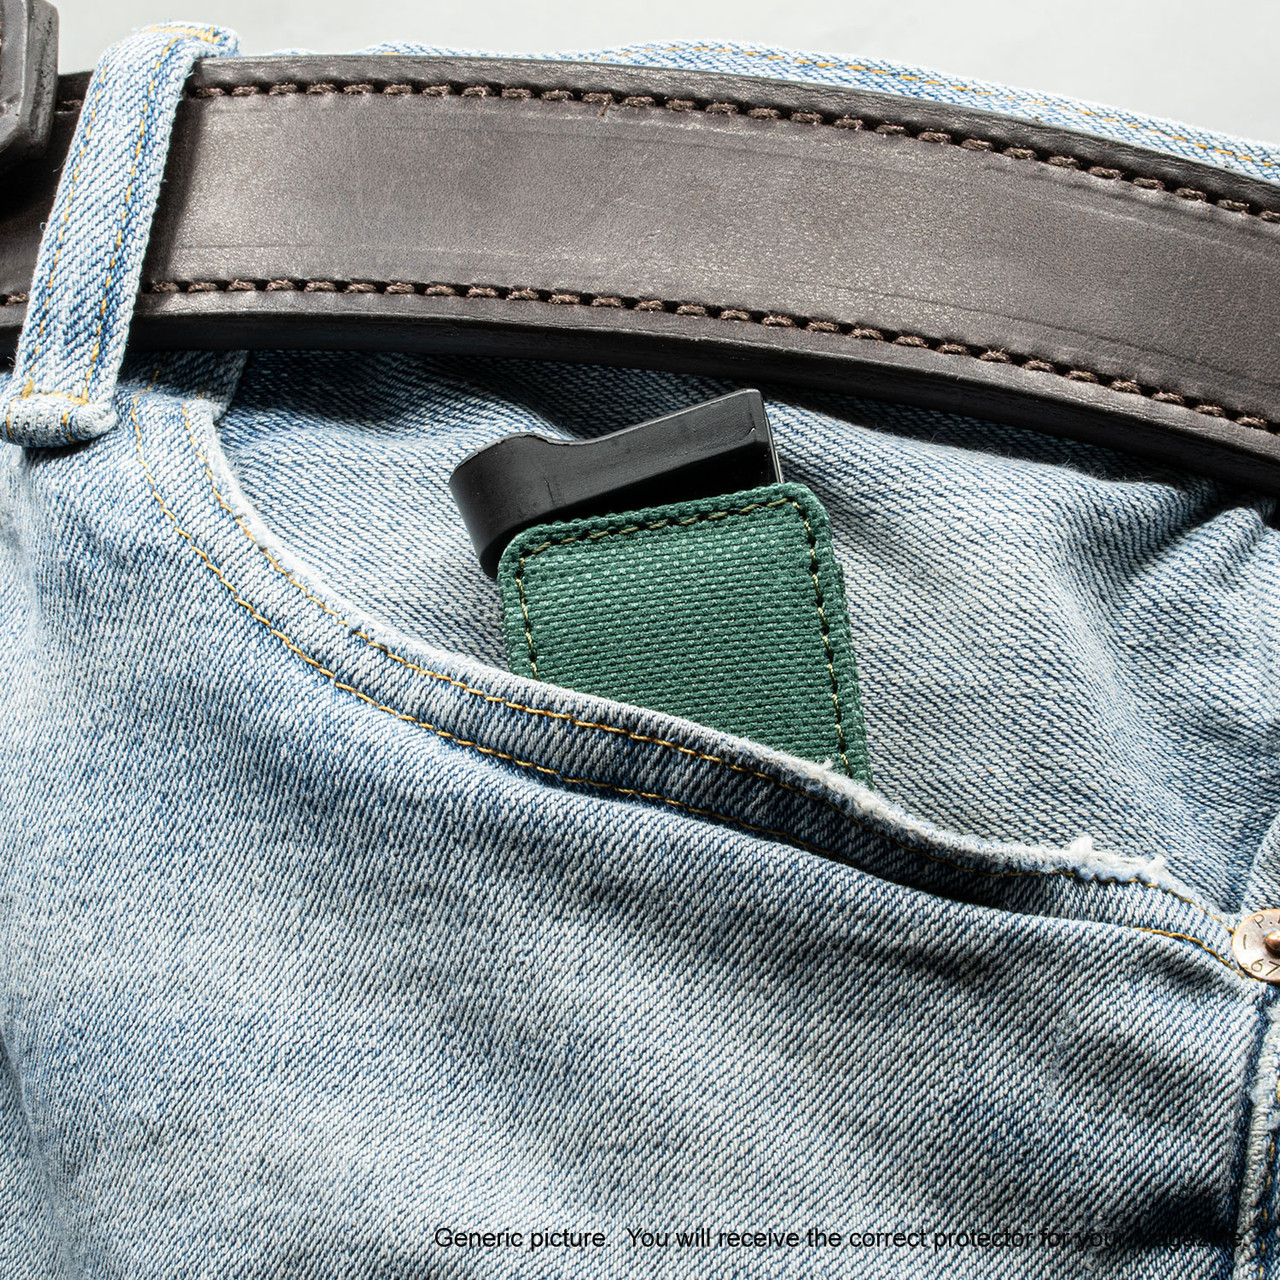 Sphinx SDP Compact Green Covert Magazine Pocket Protector